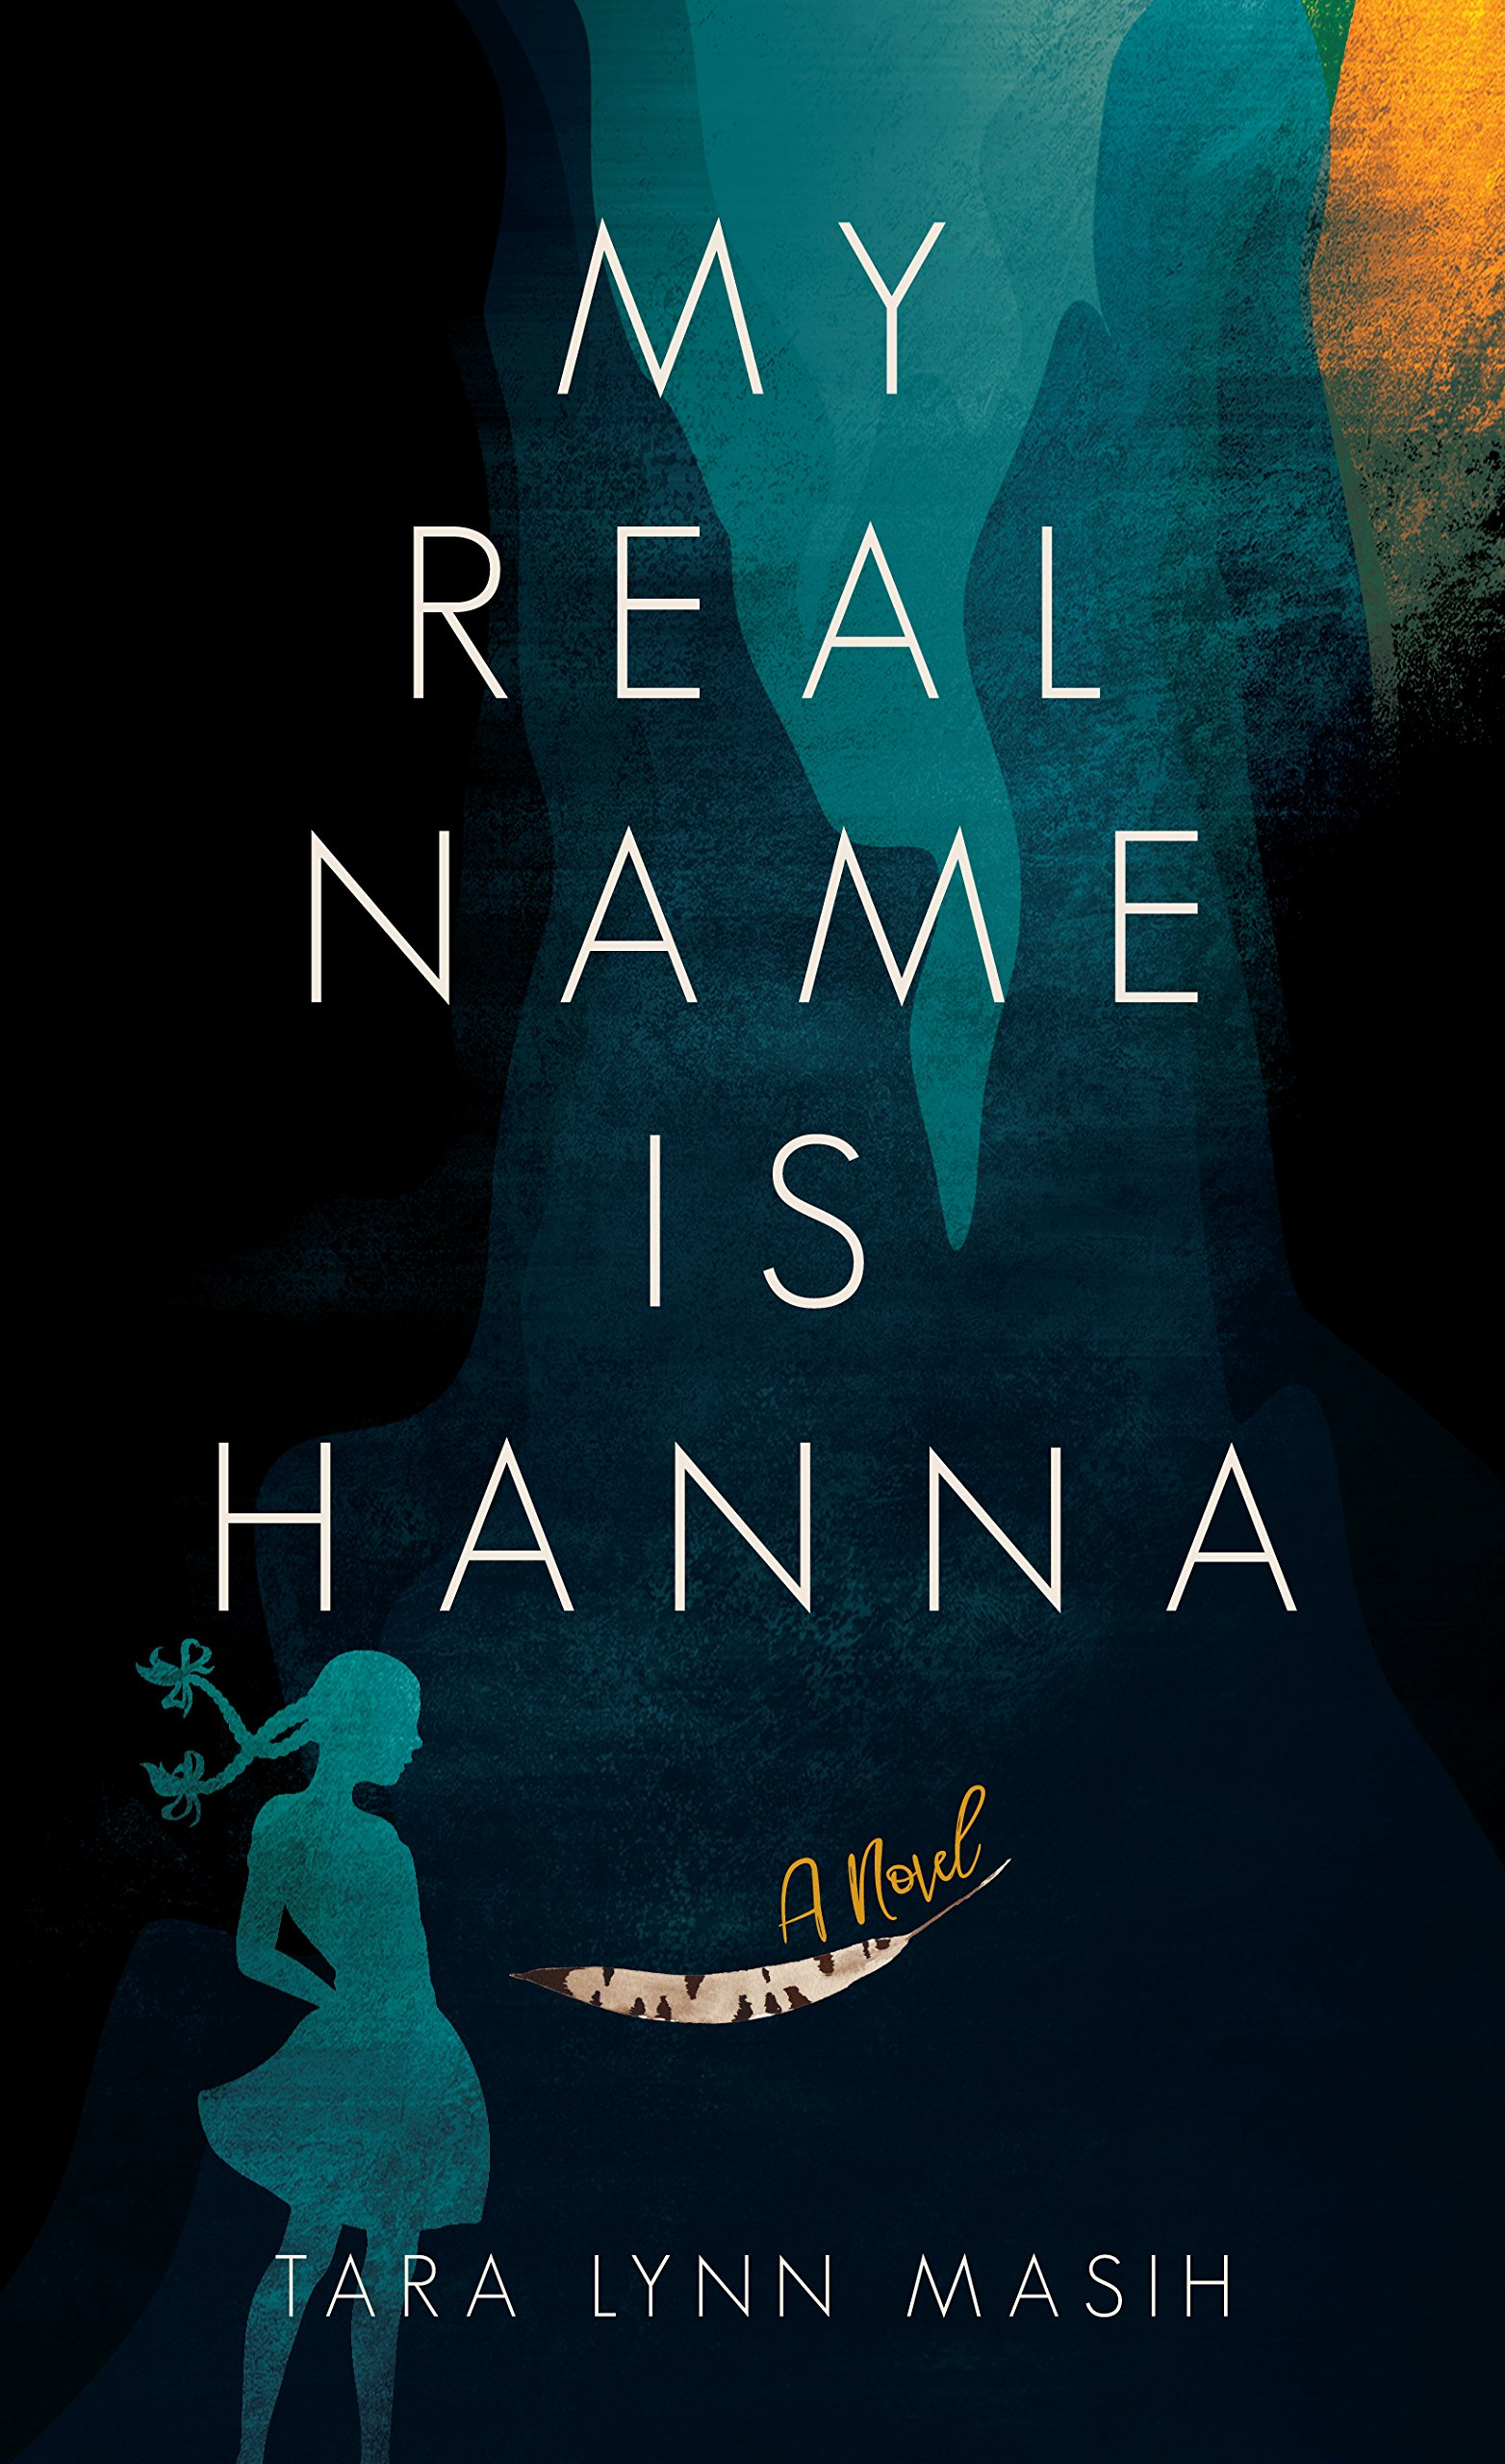 My Real Name Is Hanna cover image